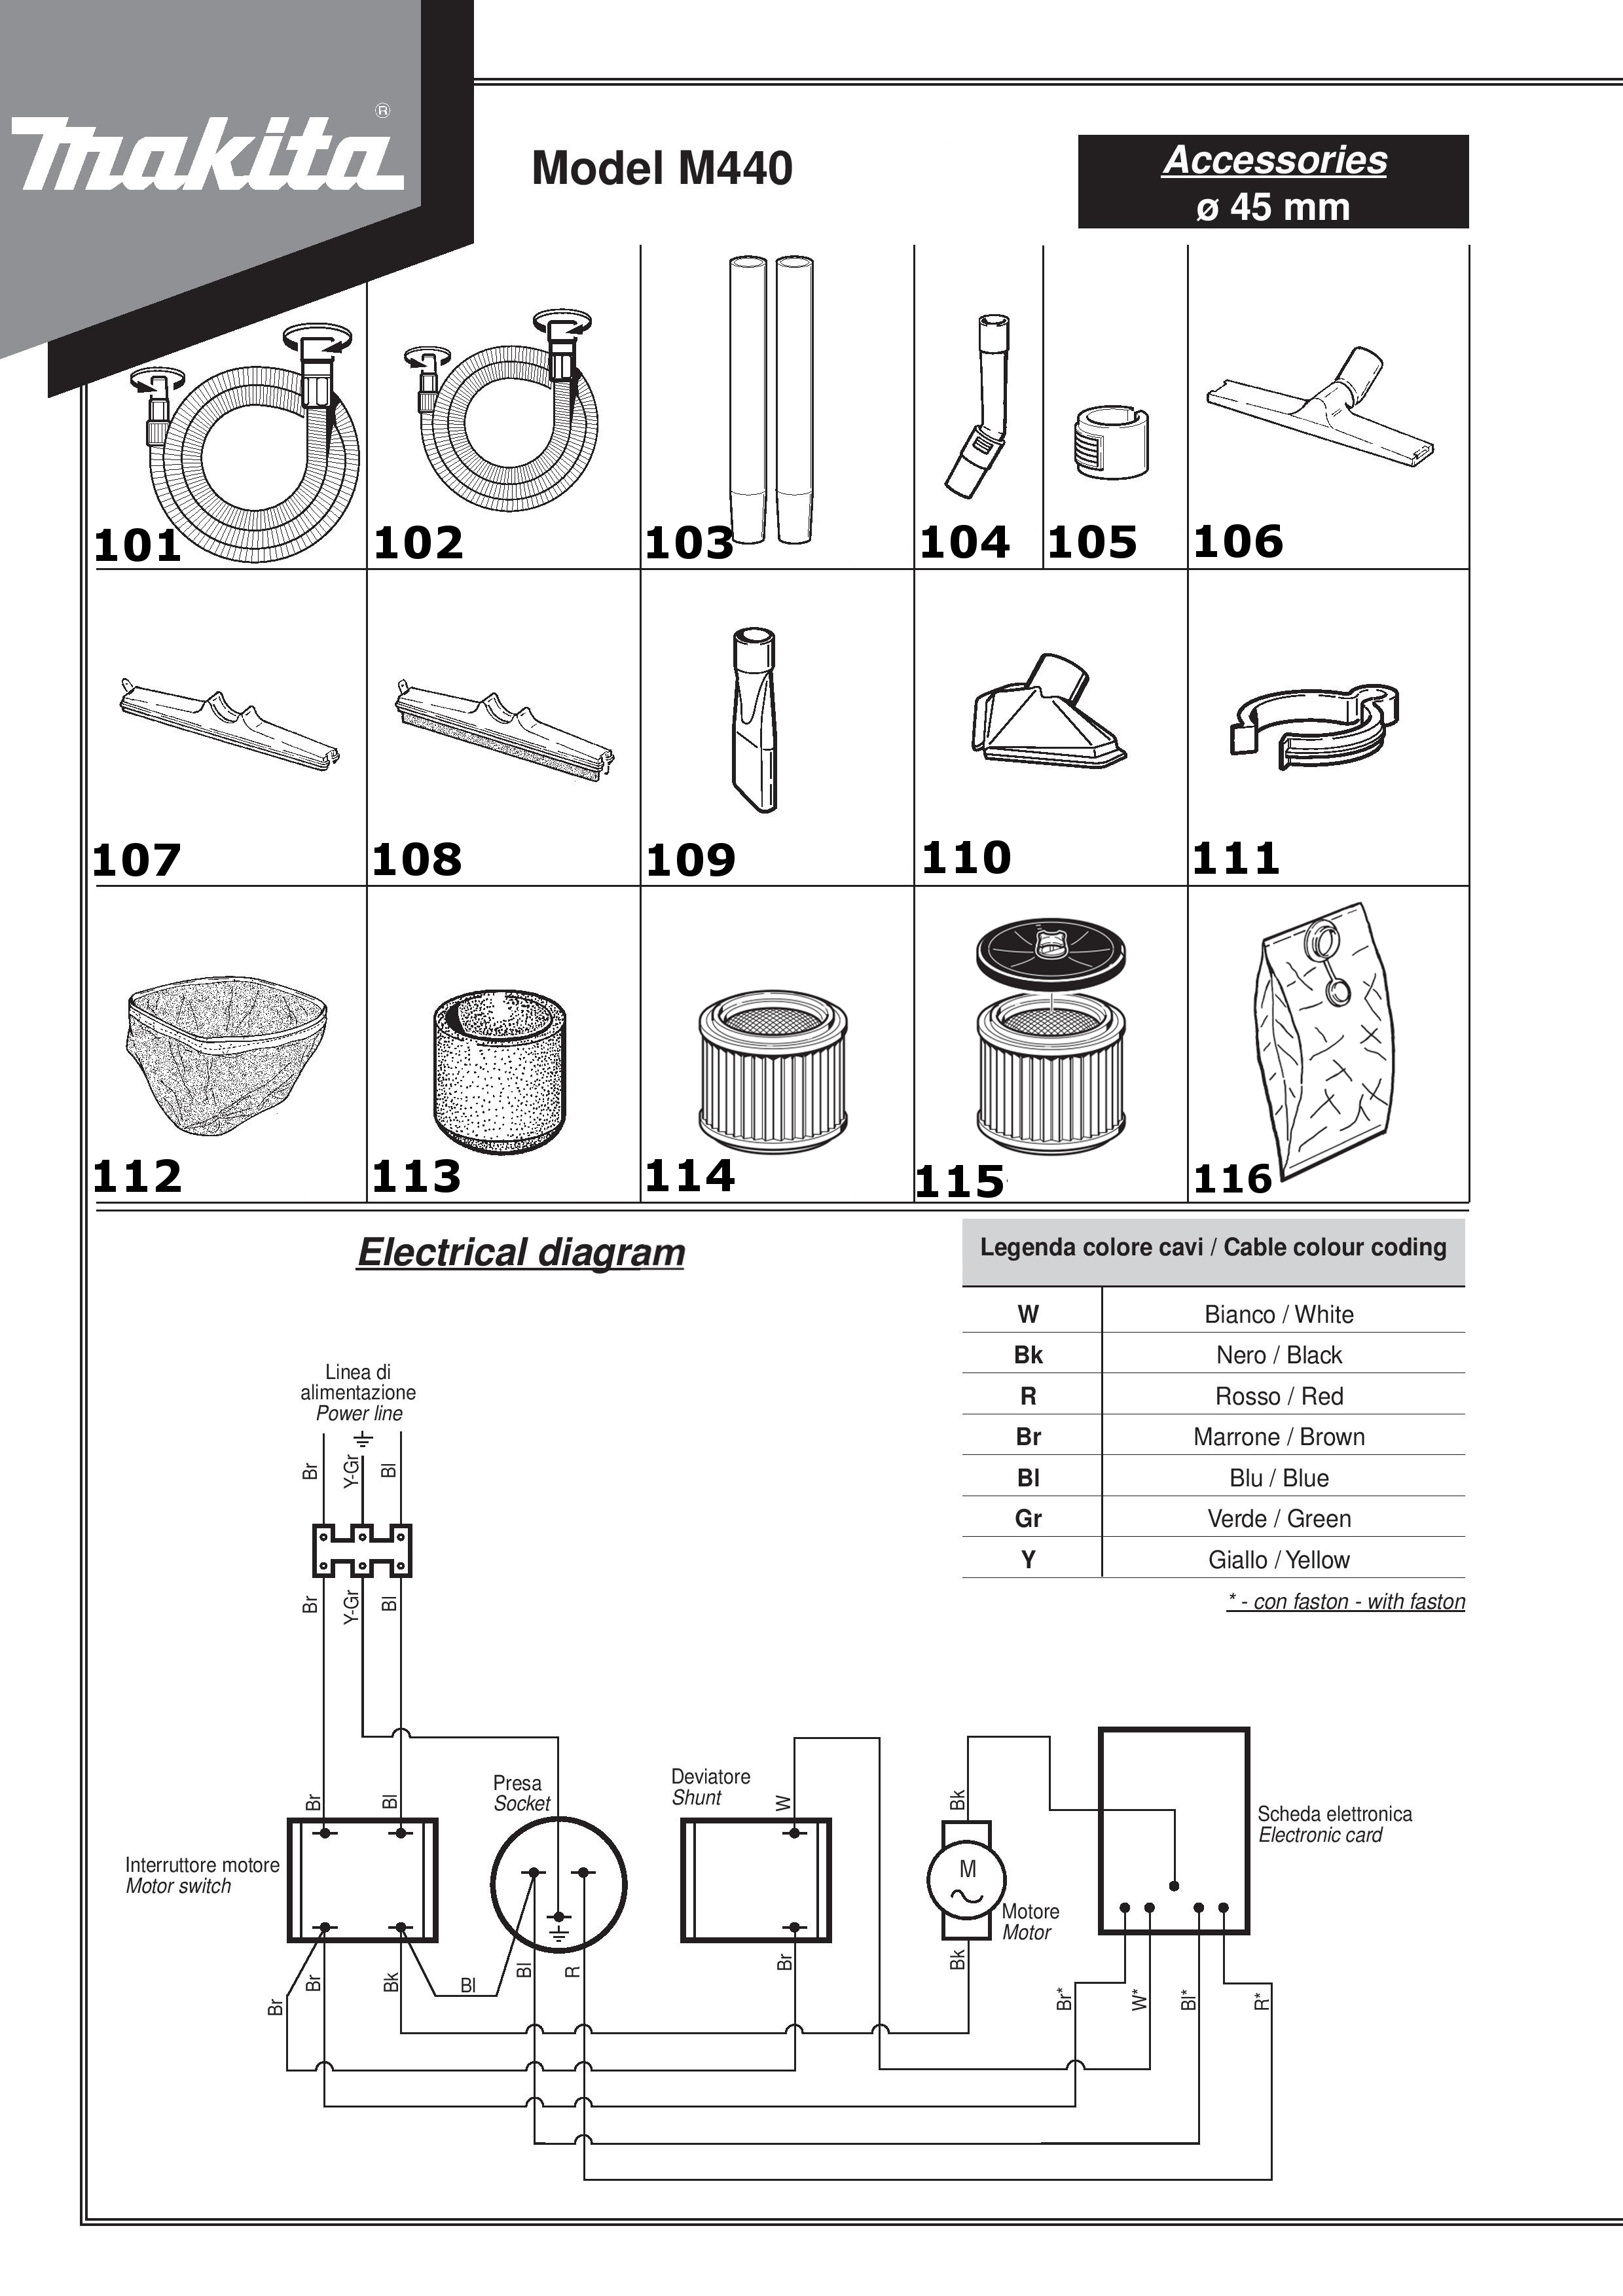 MAK440_3 relay 109 wiring diagram 4 pole relay wiring diagram \u2022 free wiring 440 wiring diagram adaptronic fd at fashall.co